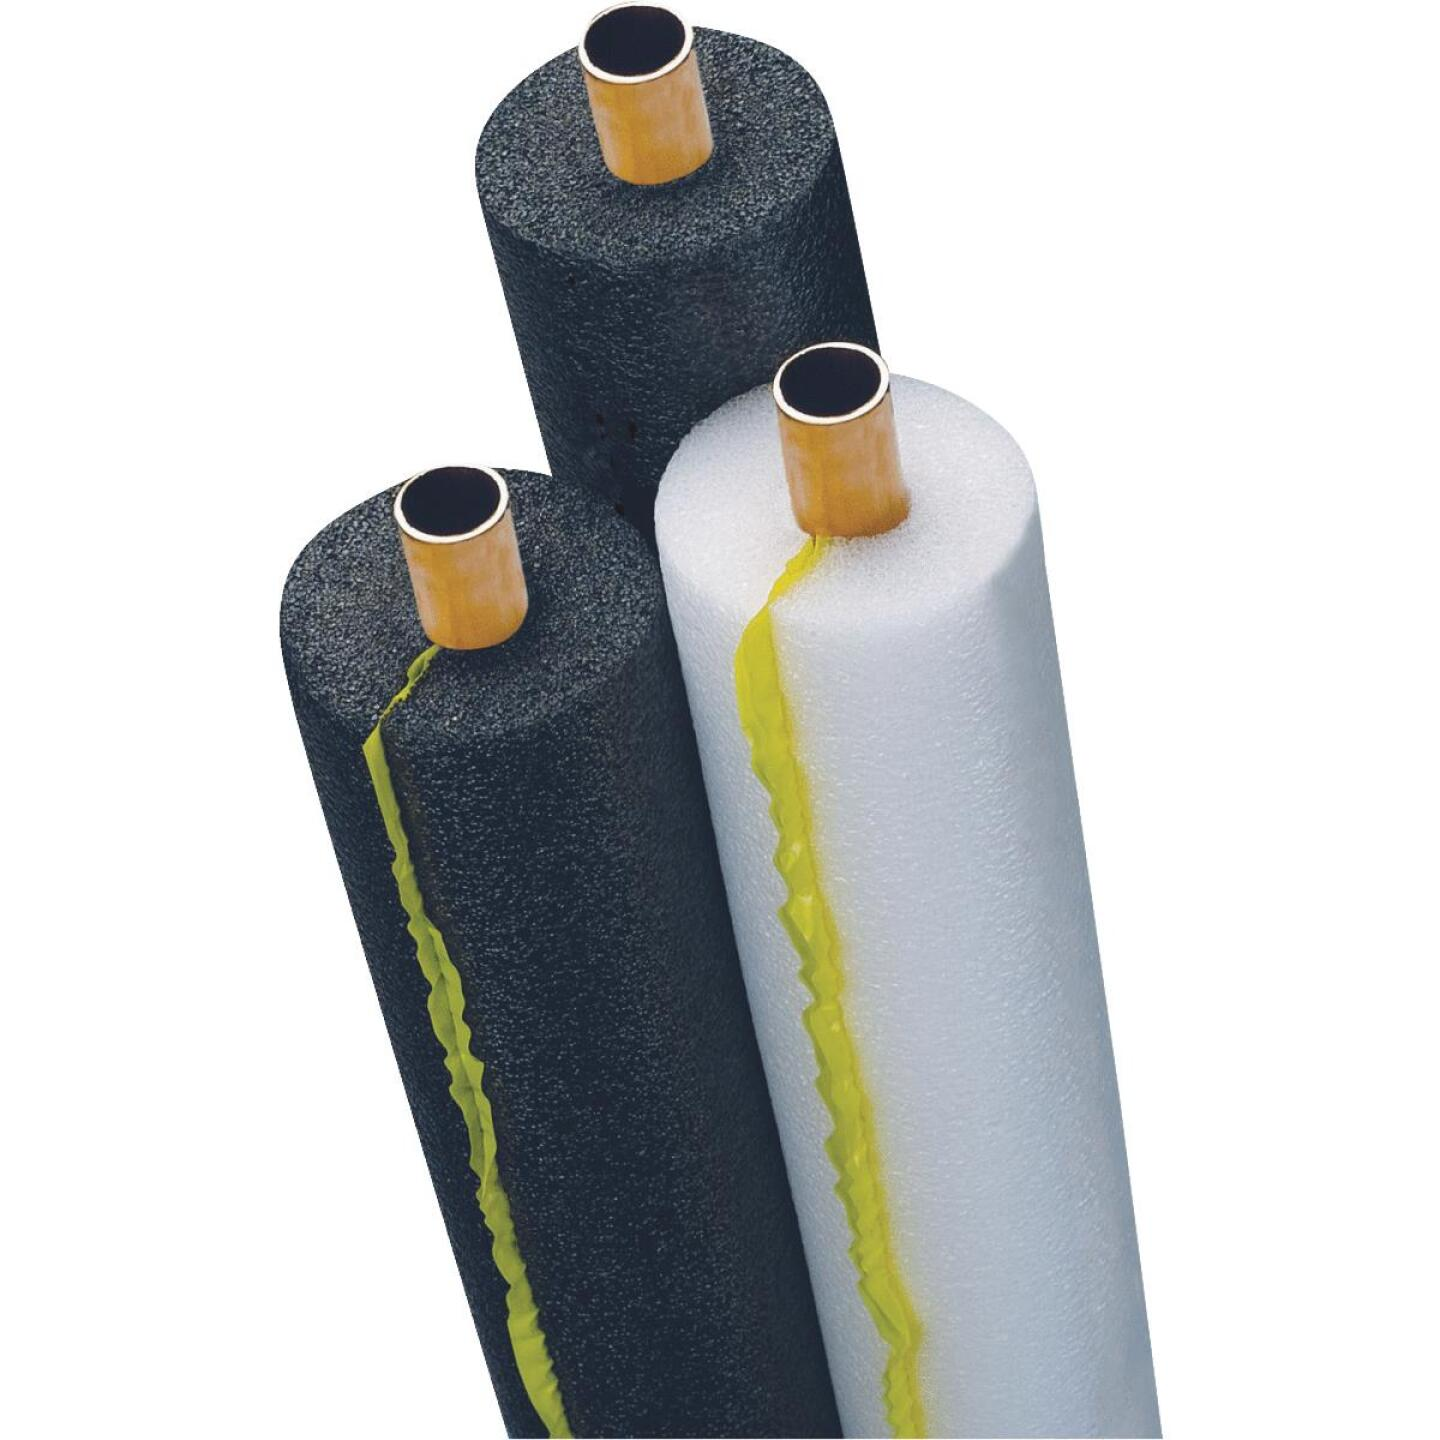 Armacell Commercial 3/4 In. Wall Self-Sealing Polyethylene Pipe Insulation Wrap, 3 In. x 6 Ft. Image 1